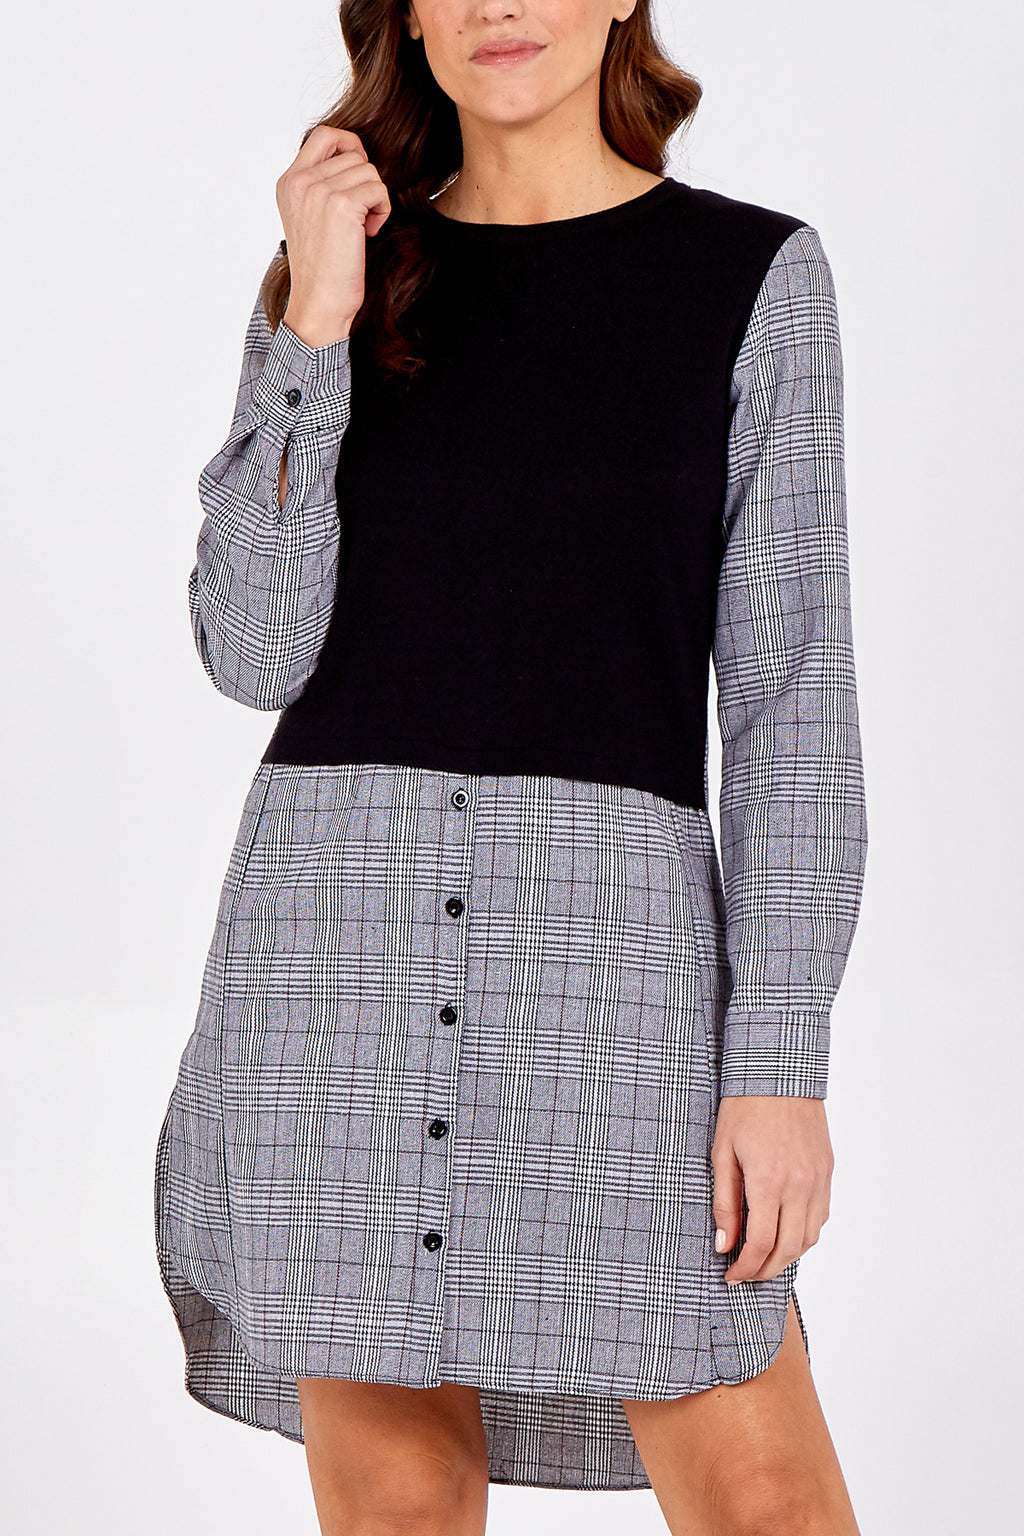 Long Checked Shirt With Knit Pullover Vest